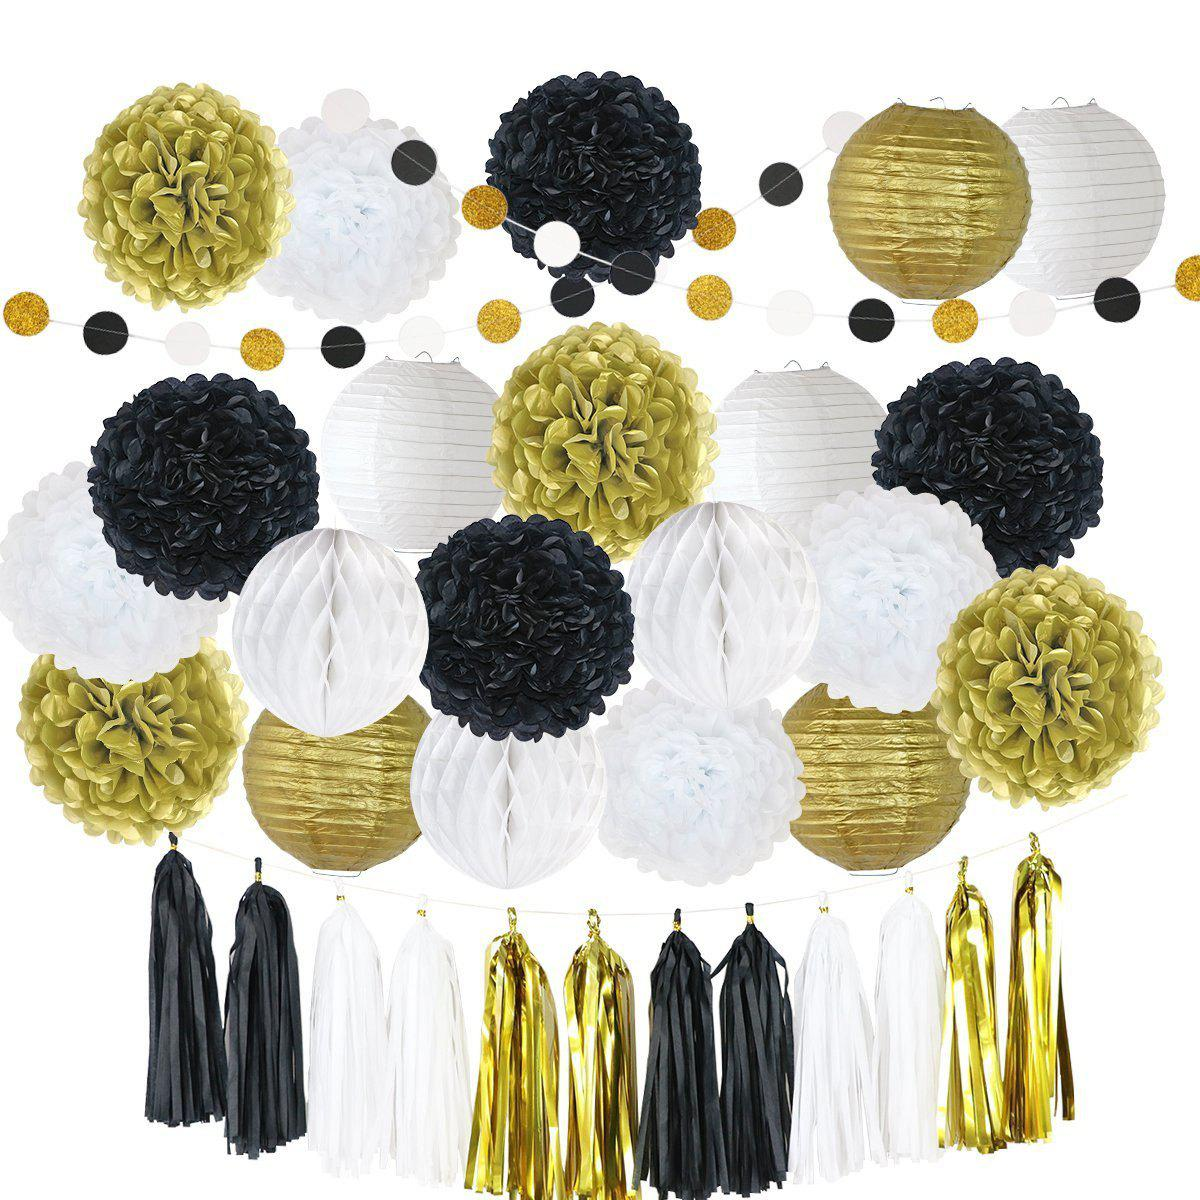 81Pcs Tissue Paper Pom Poms Flowers Kit Paper Lanterns Hanging Dot paper Garland Honeycomb Balls Tissue Tassels for Wedding Party Decoration Birthday Kids ...